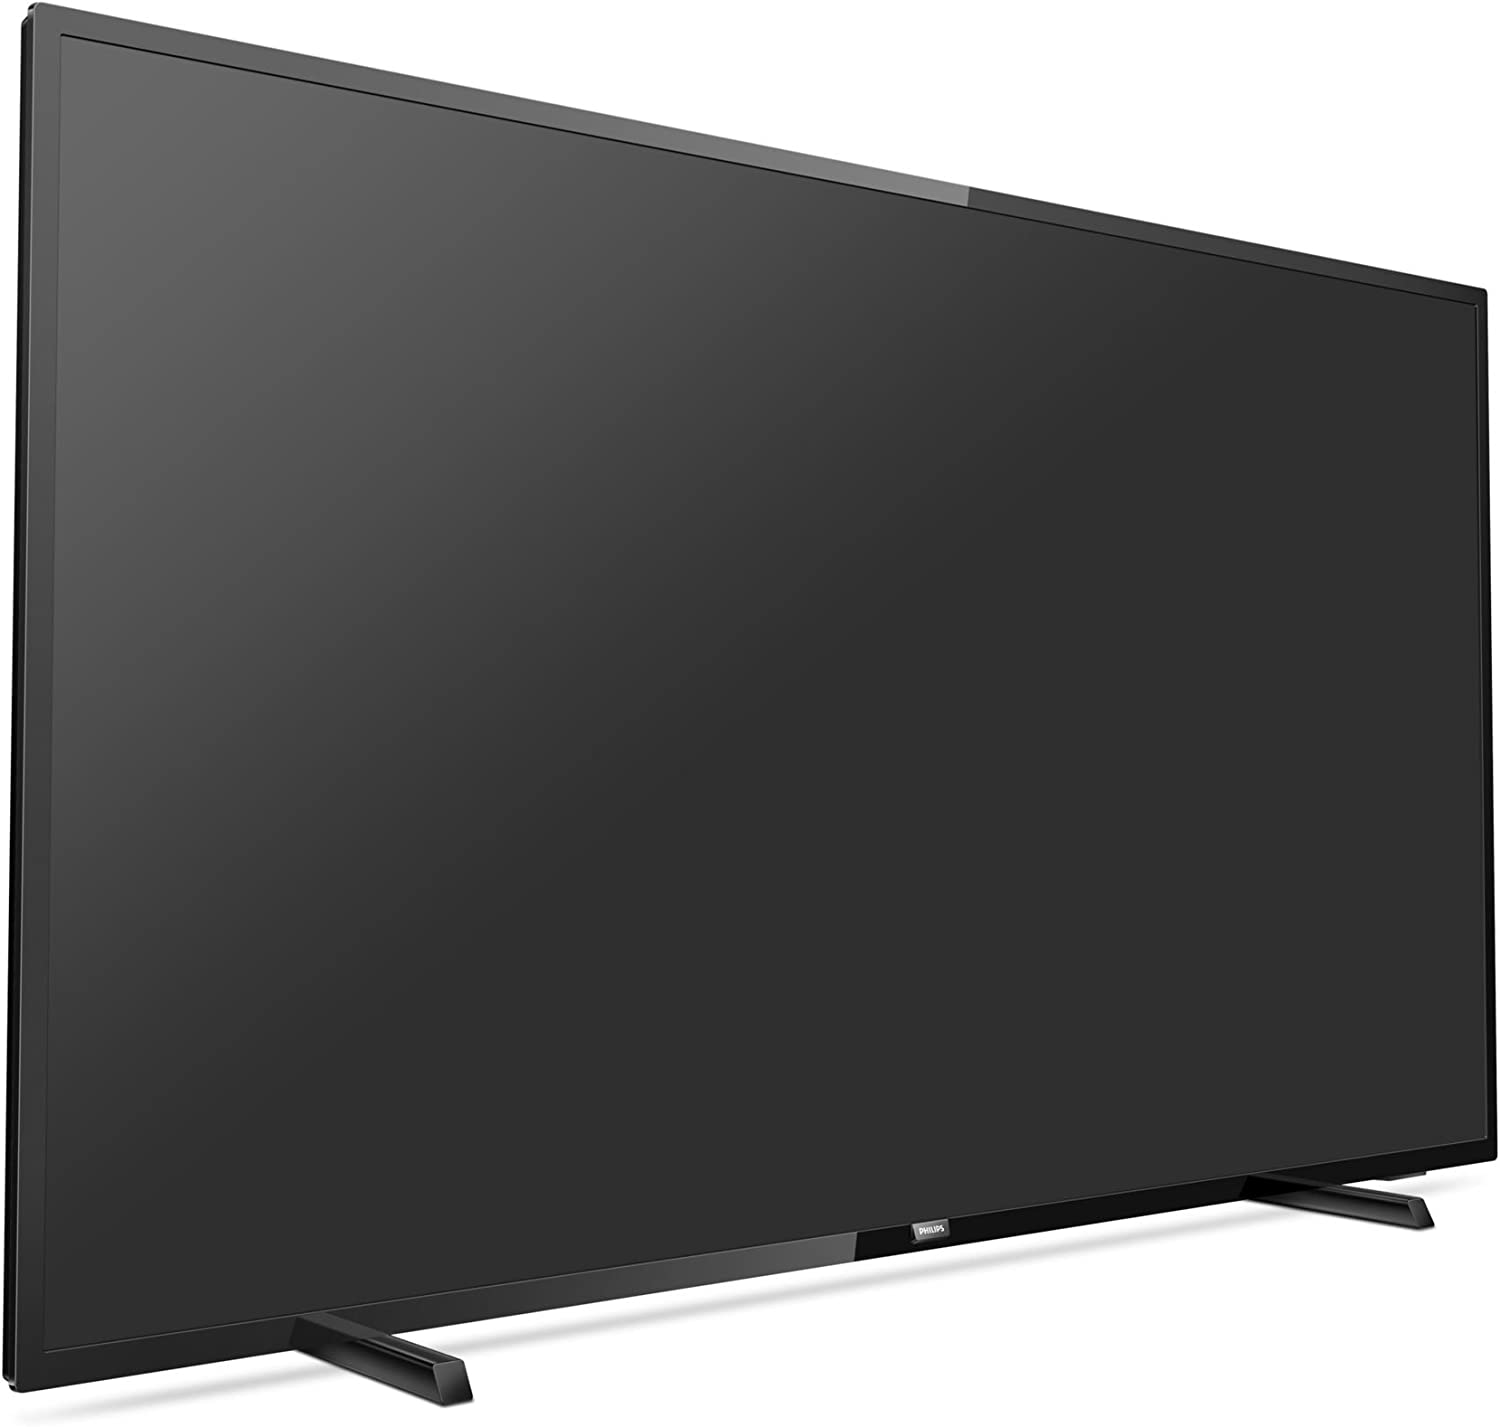 Philips TV Led Ultraplano 55Pus6503-55/139Cm 4K Uhd 3840 X 2160 - Dvb-T/T2/T2-Hd/C/S/S2 - Smart TV - WiFi - Altavoces 20W - 3: Philips: Amazon.es: Electrónica